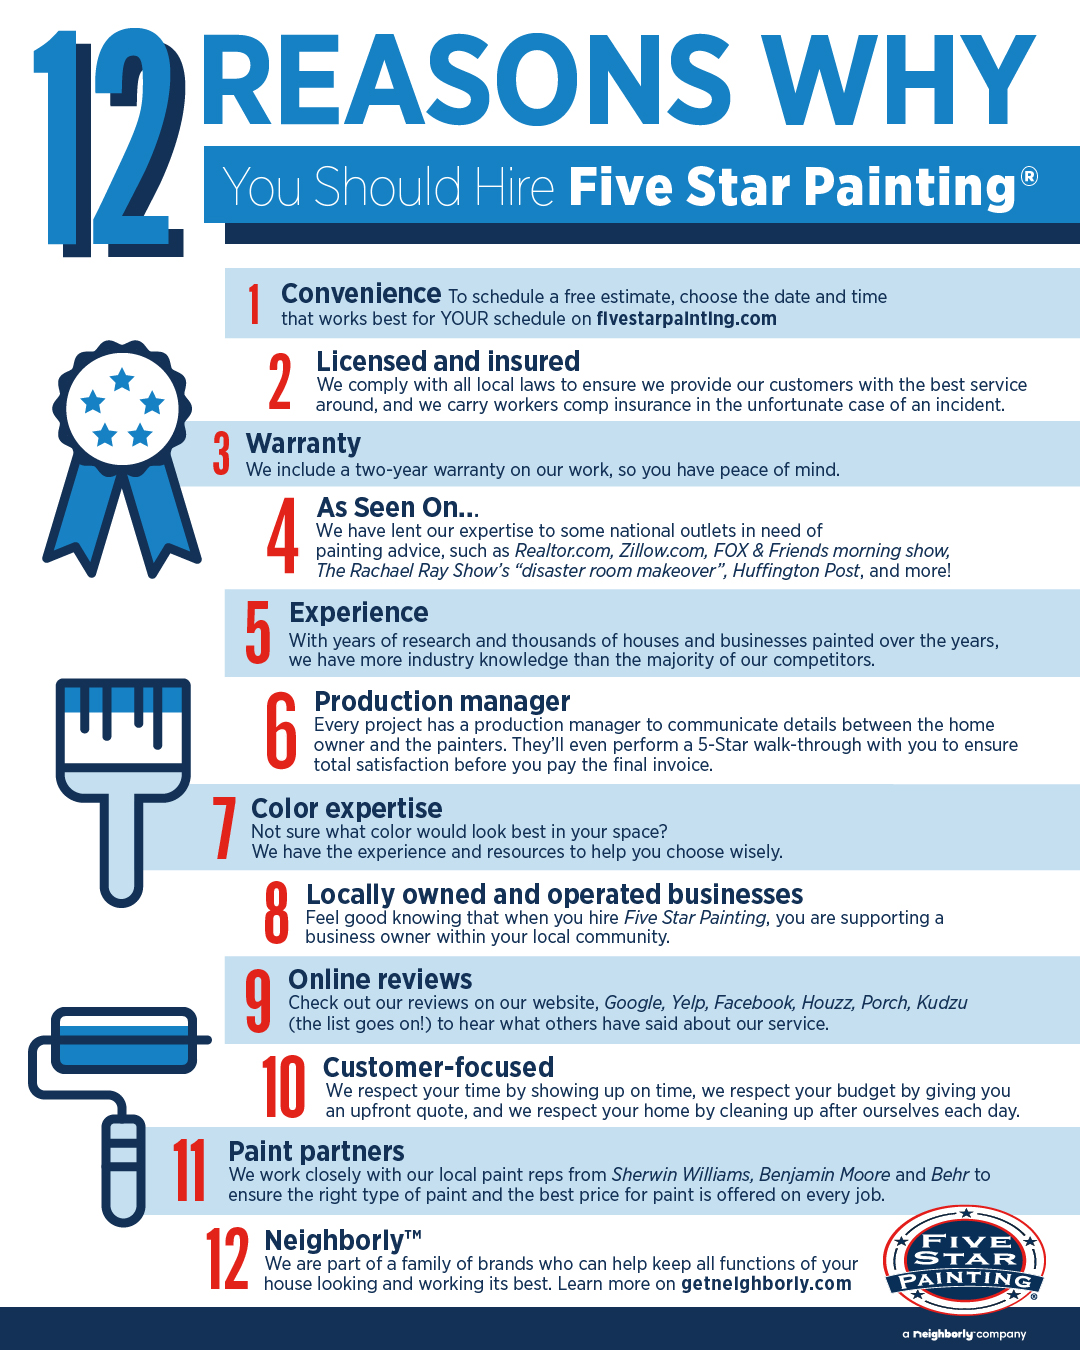 Would Hiring A Professional Painter Be The Right Choice: 12 Reasons To Hire Five Star Painting